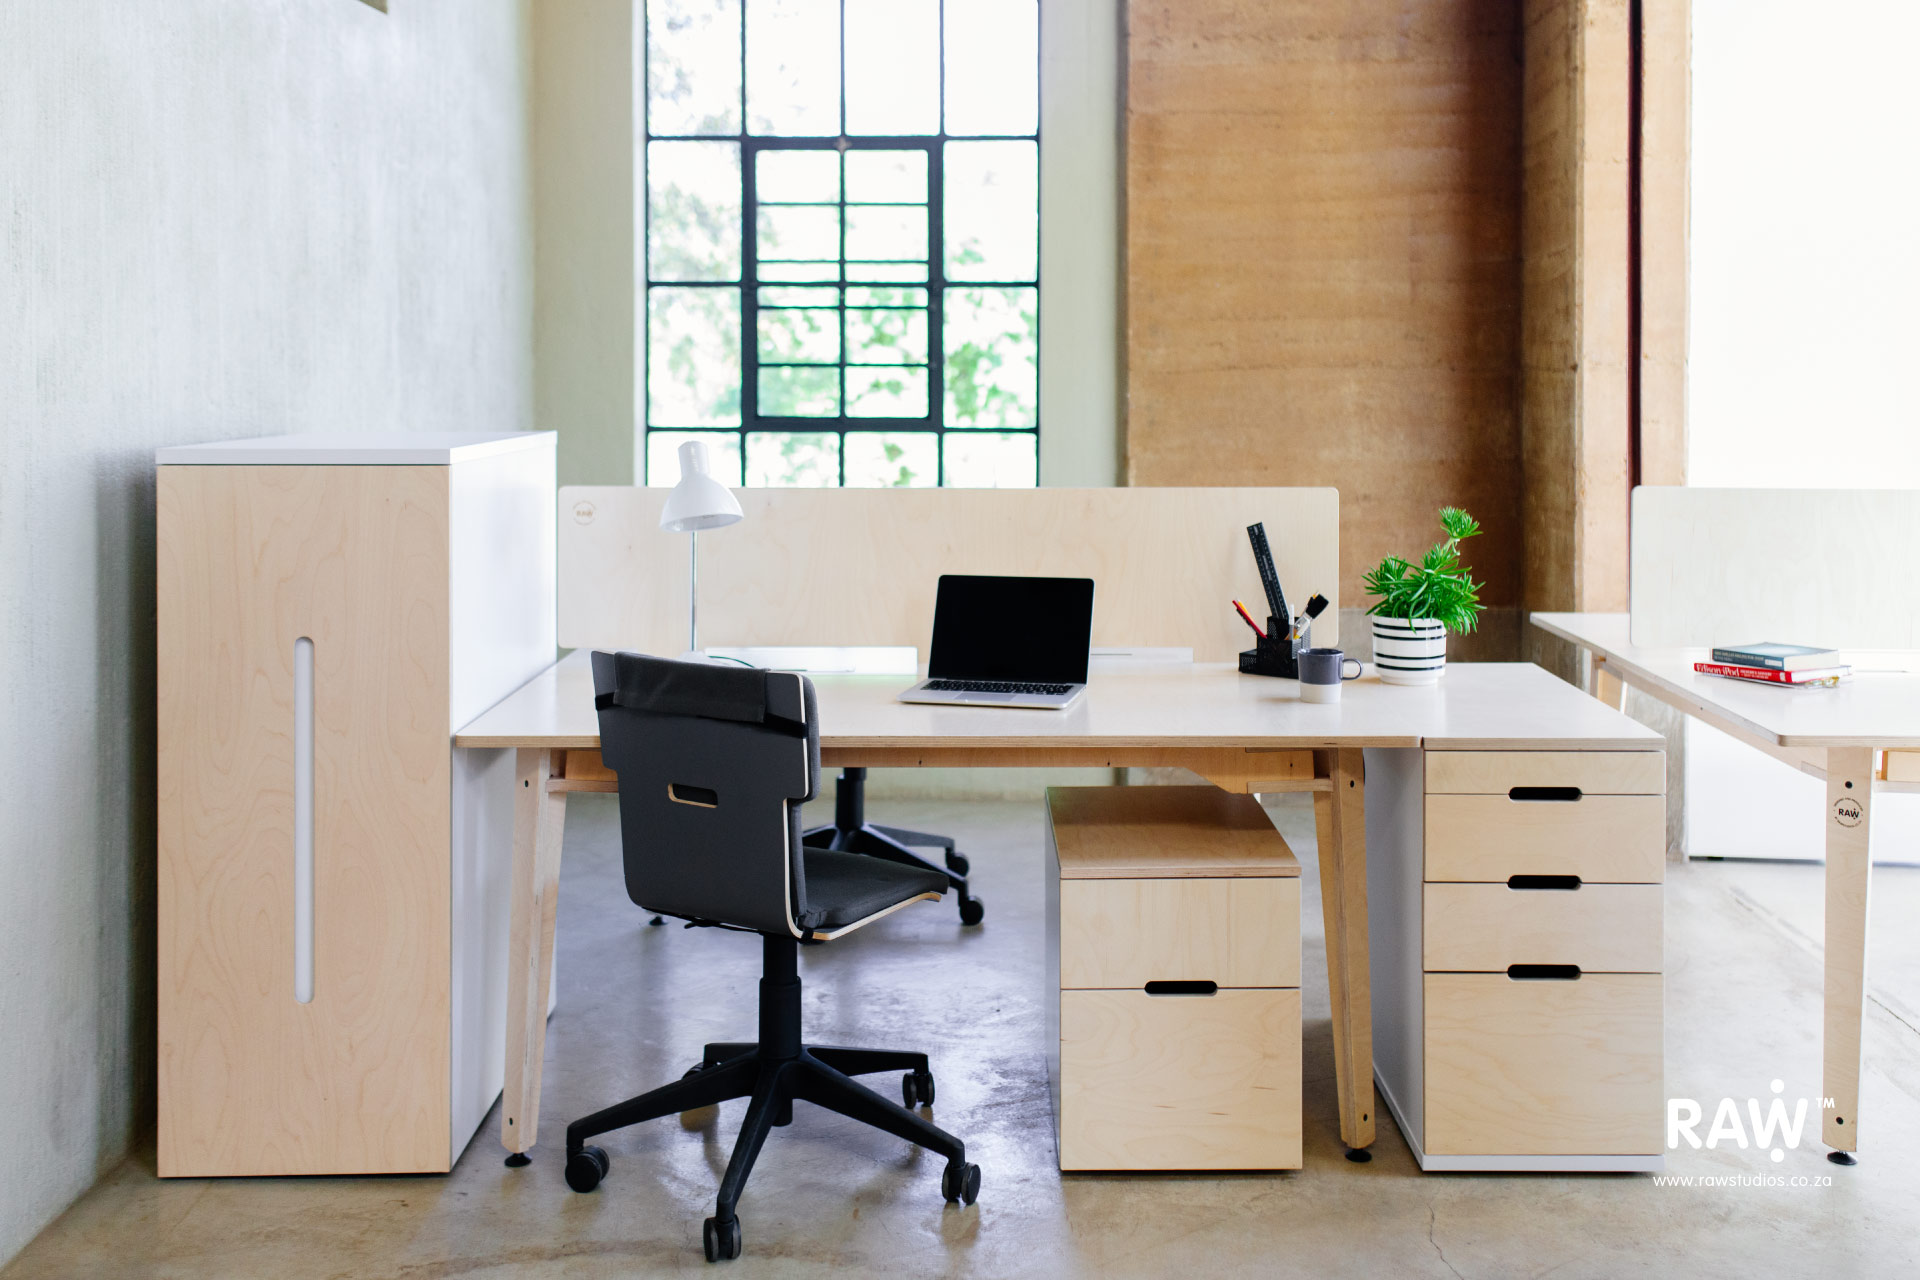 New All Ekstend Basik to Tall: Office Storage Solutions Desk Furniture